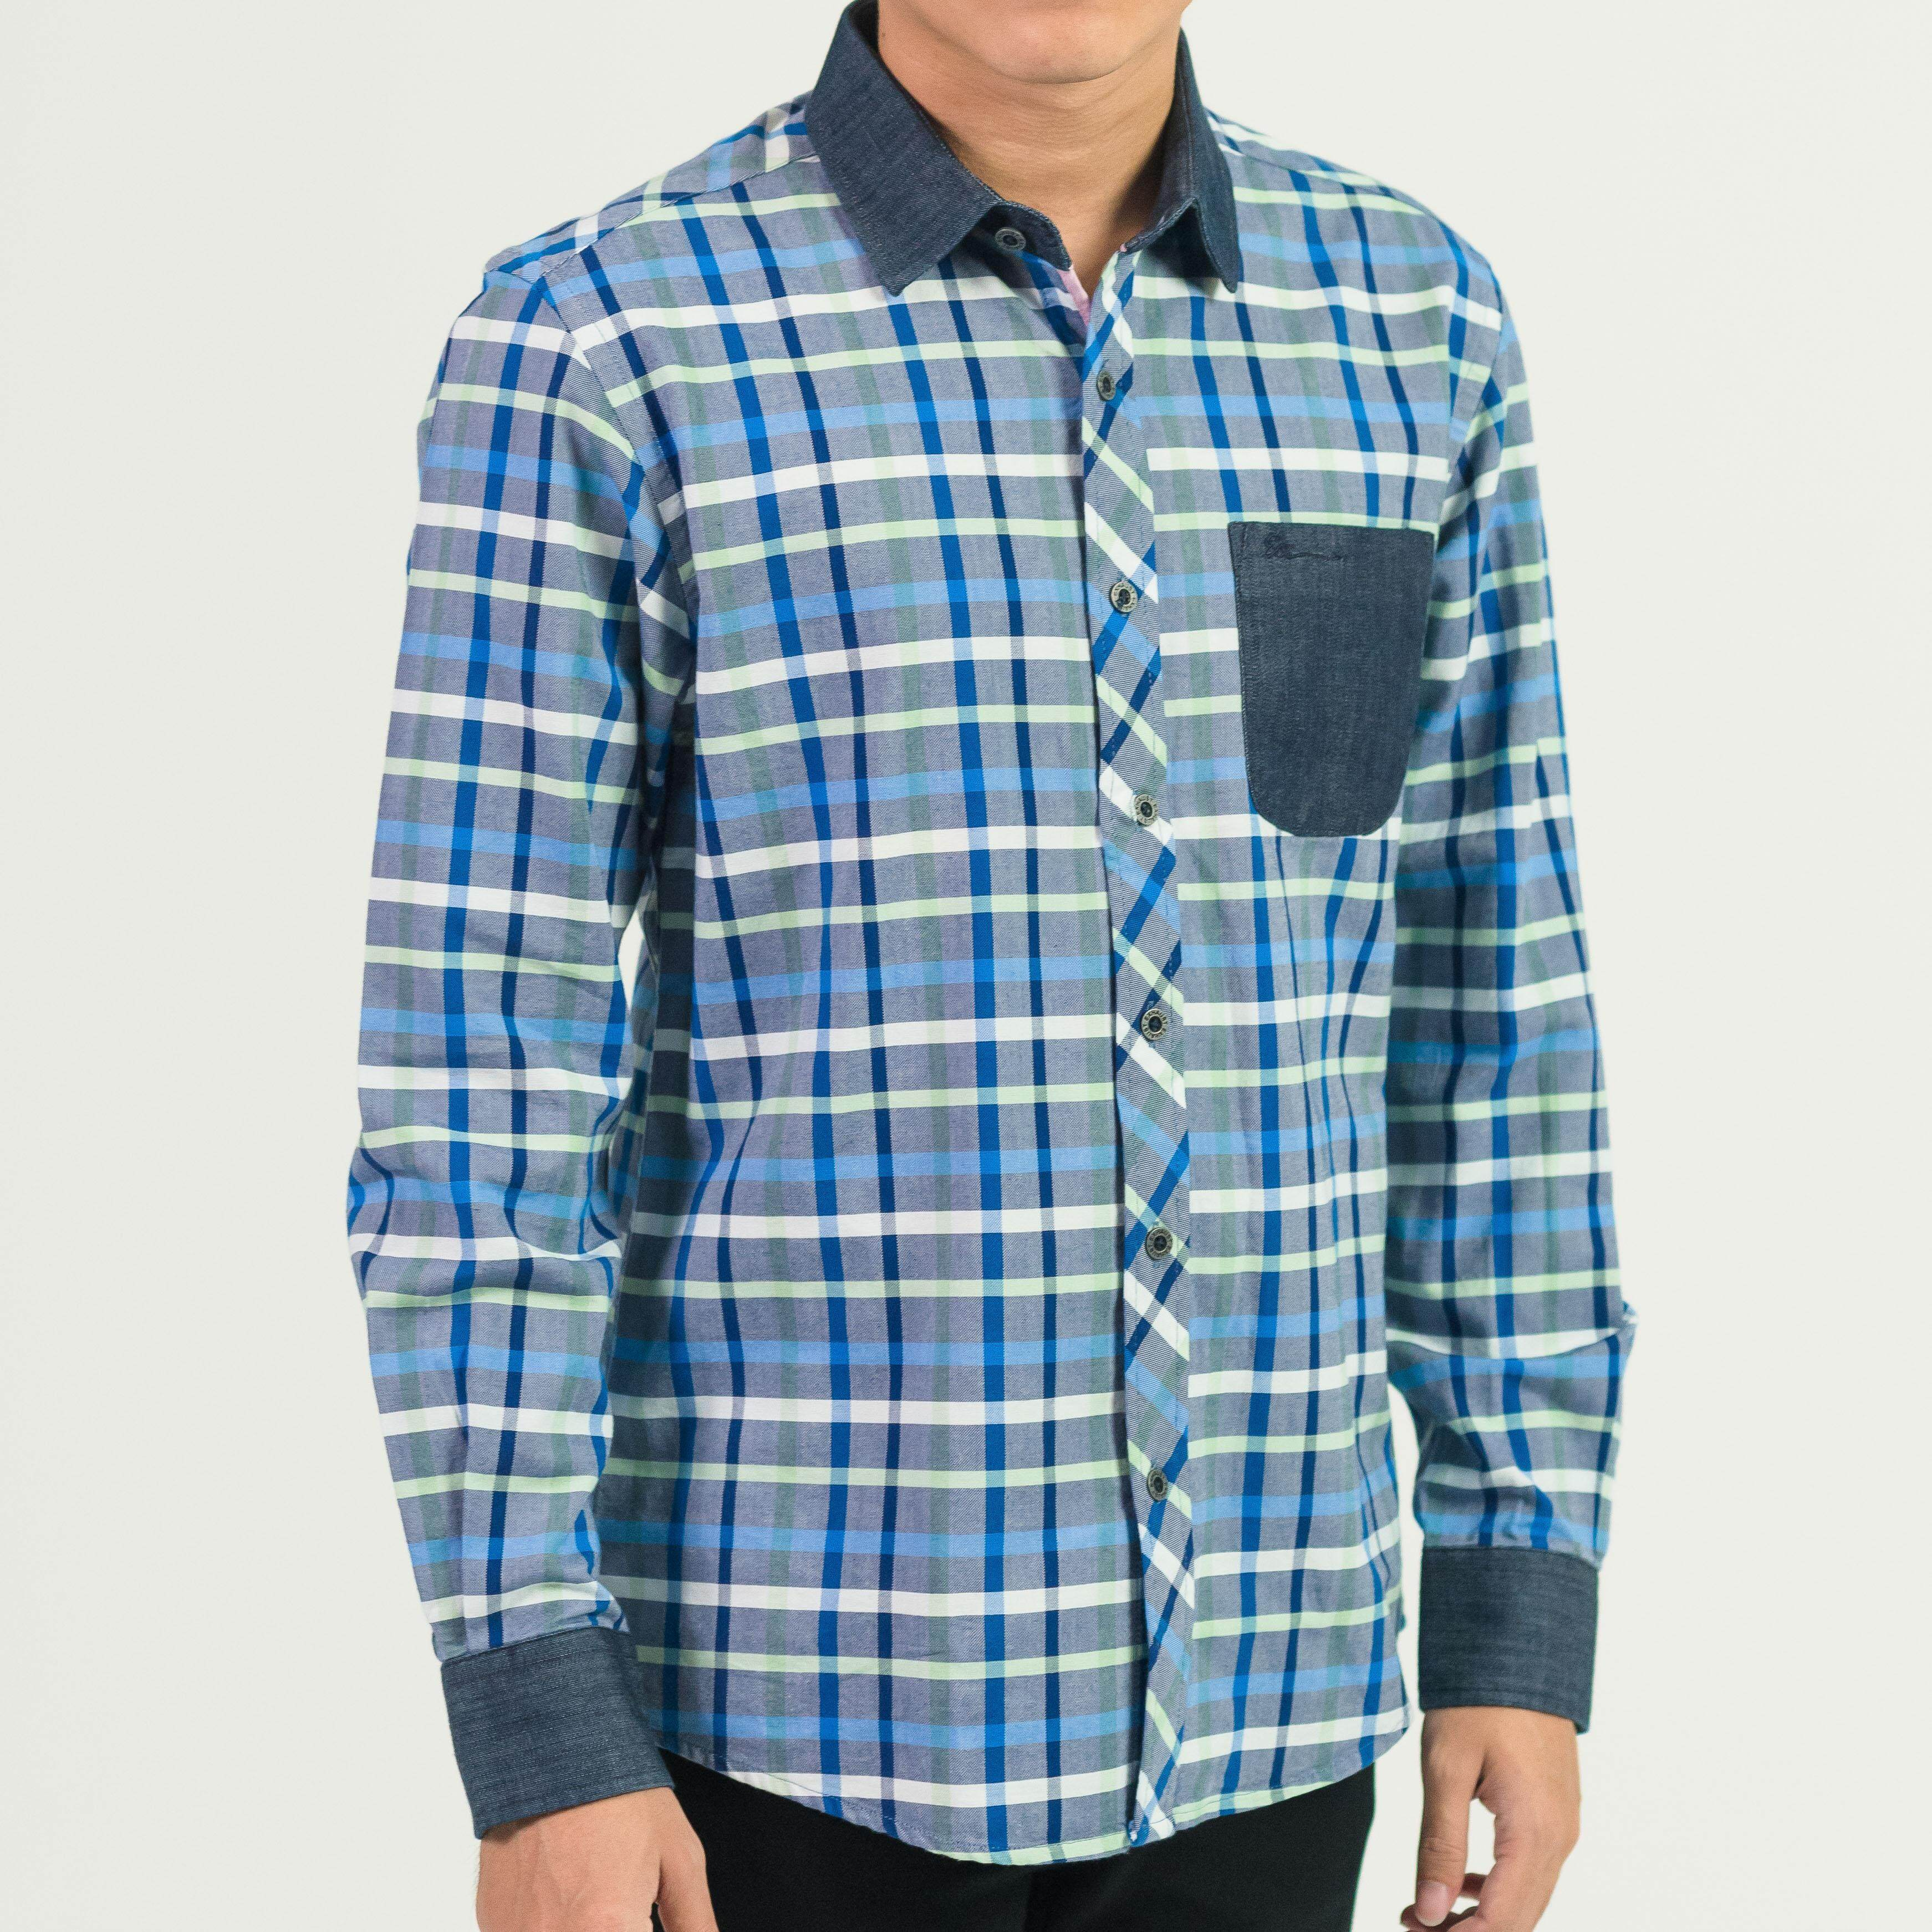 MEN'S SHORT SLEEVE CHECKED SHIRT WITH POCKET B79-40389#3